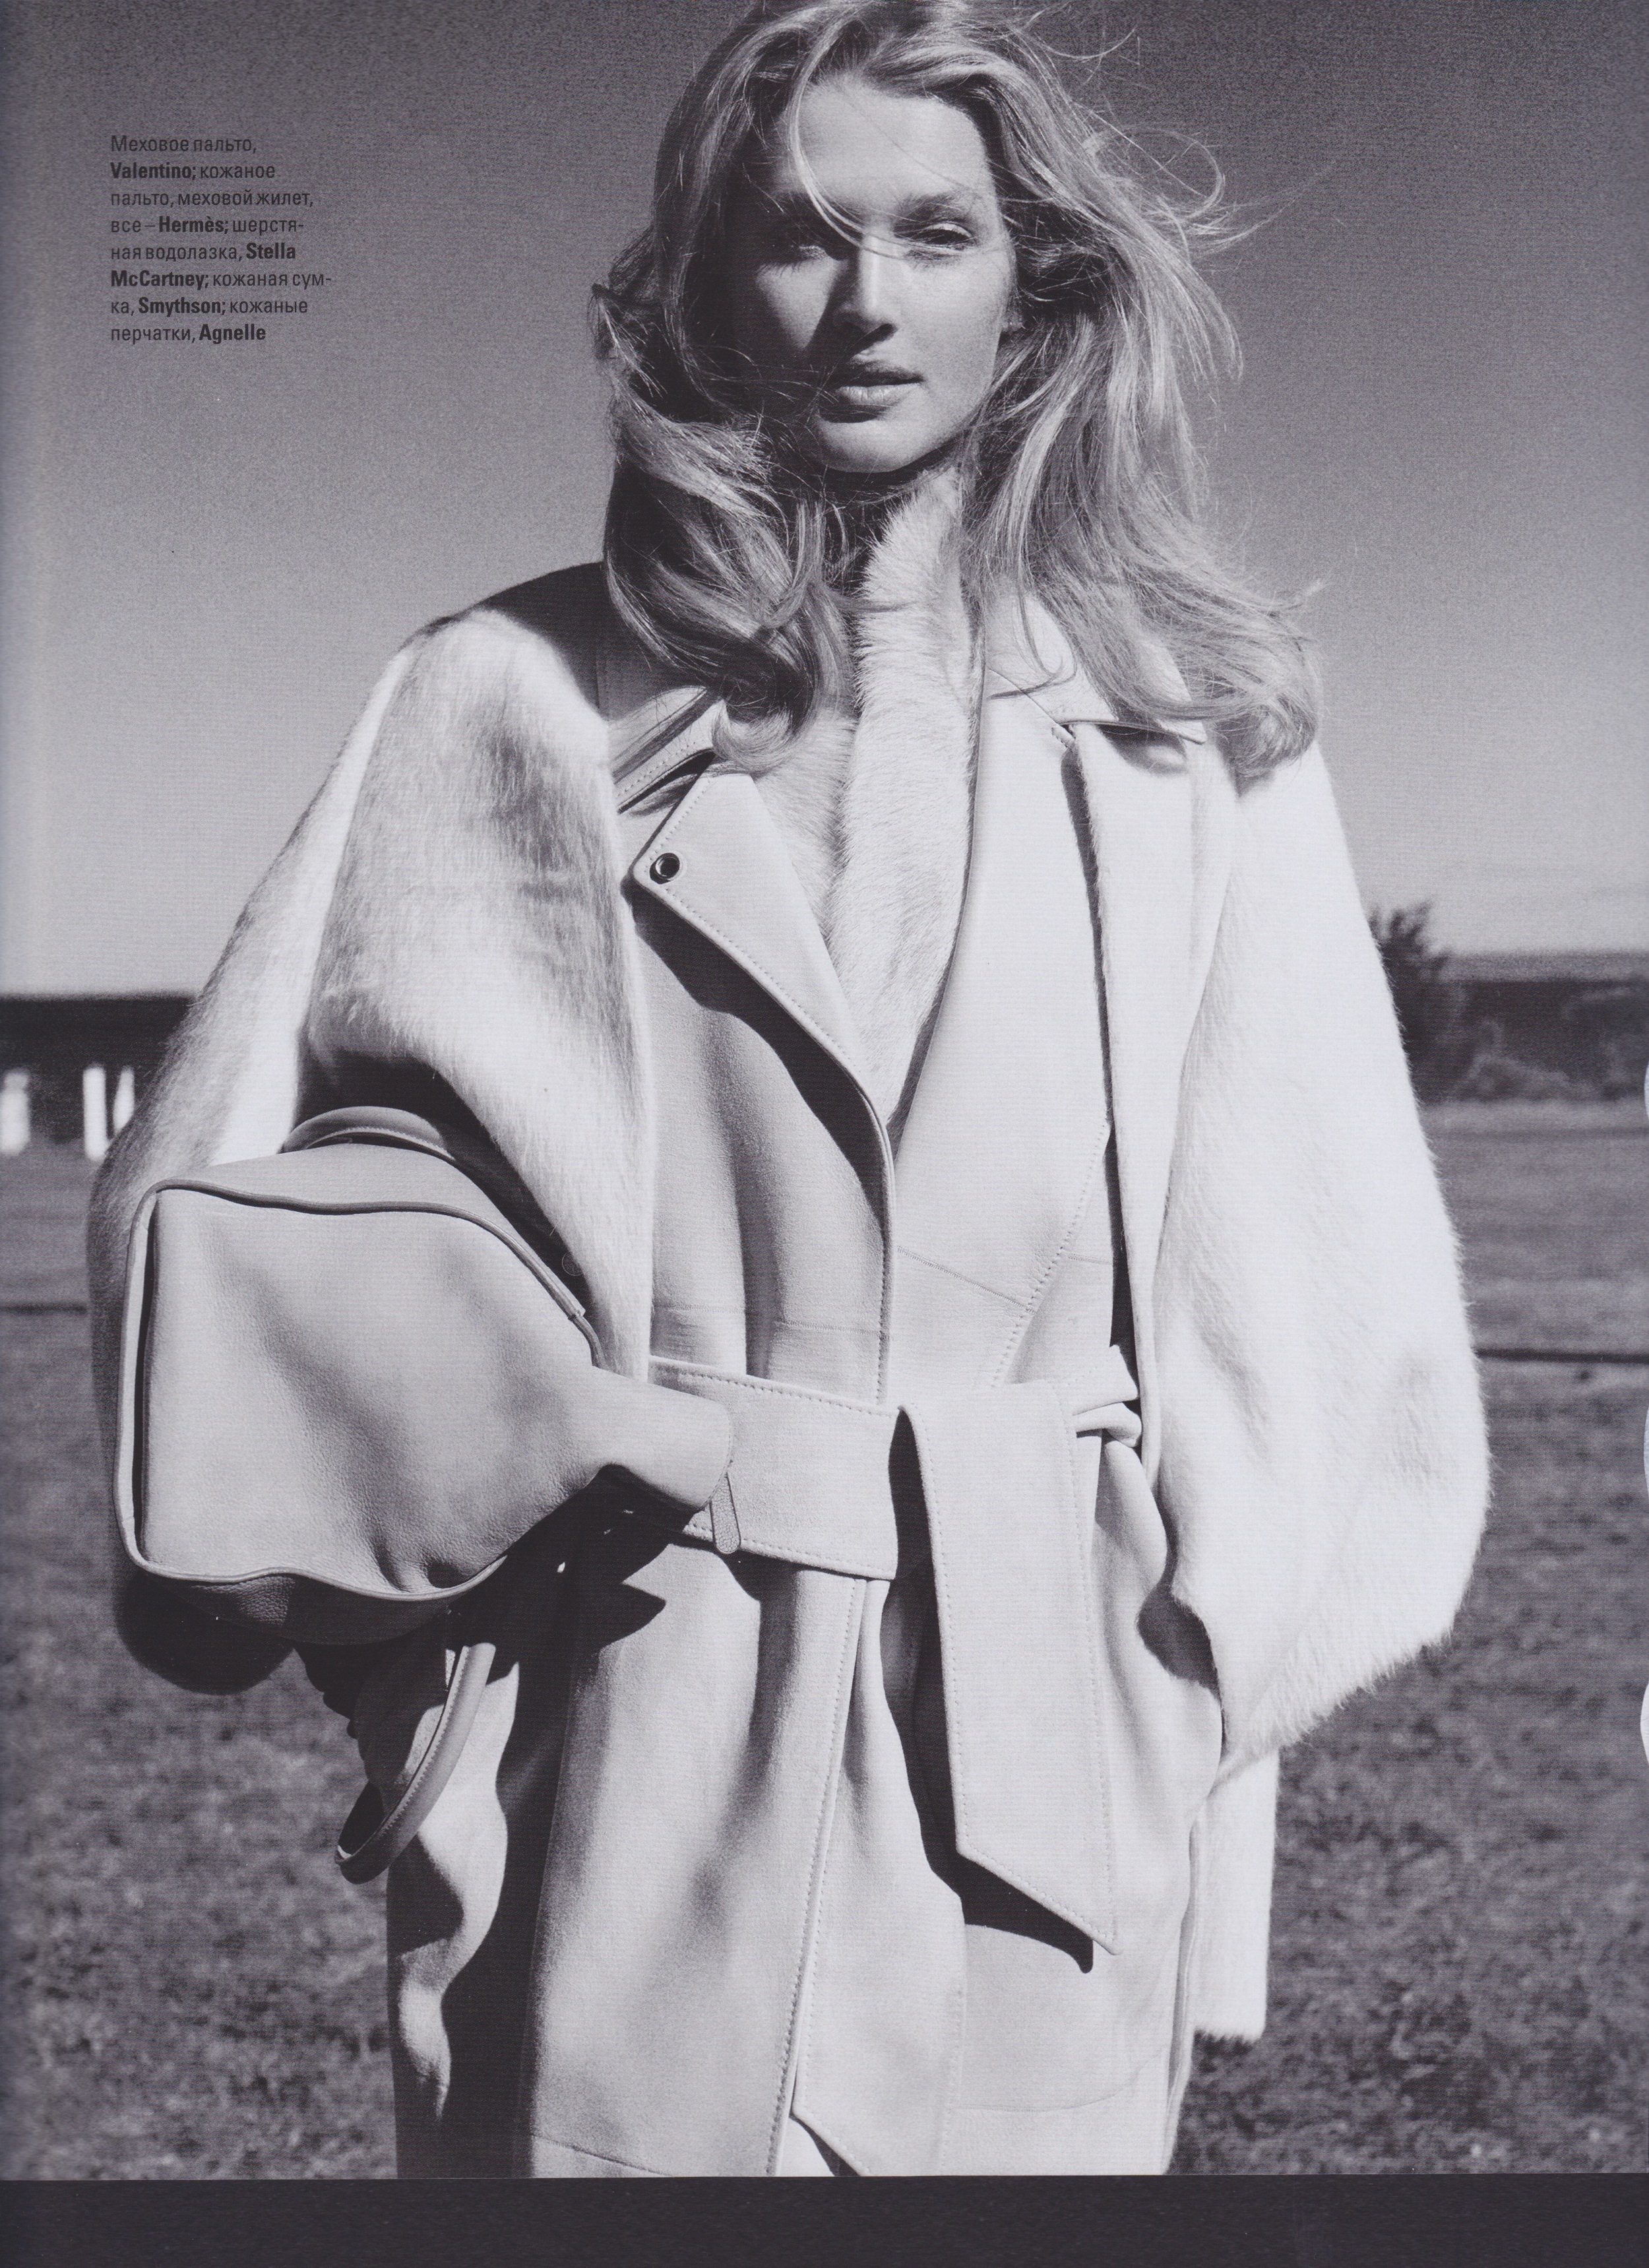 toni garrn photo shoot for vogue ukraine by benny horne and county fair productions 7